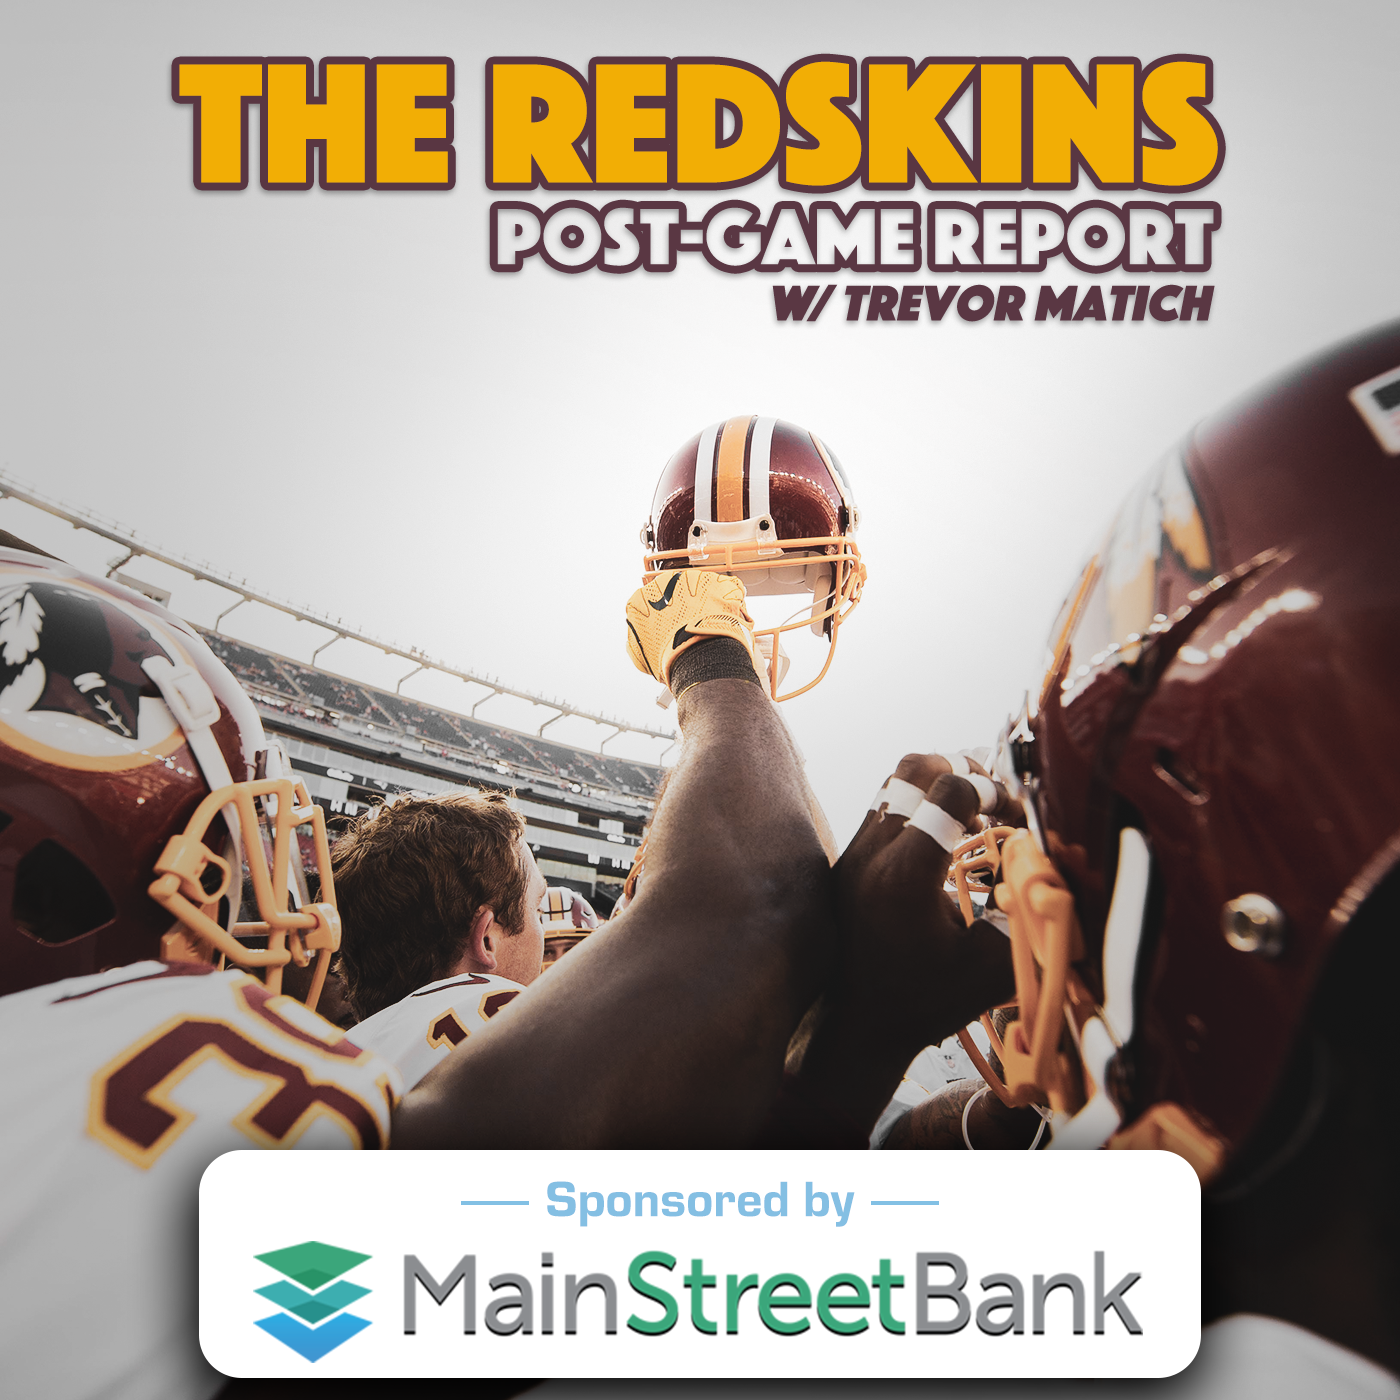 Redskins post-game report graphic 1x1